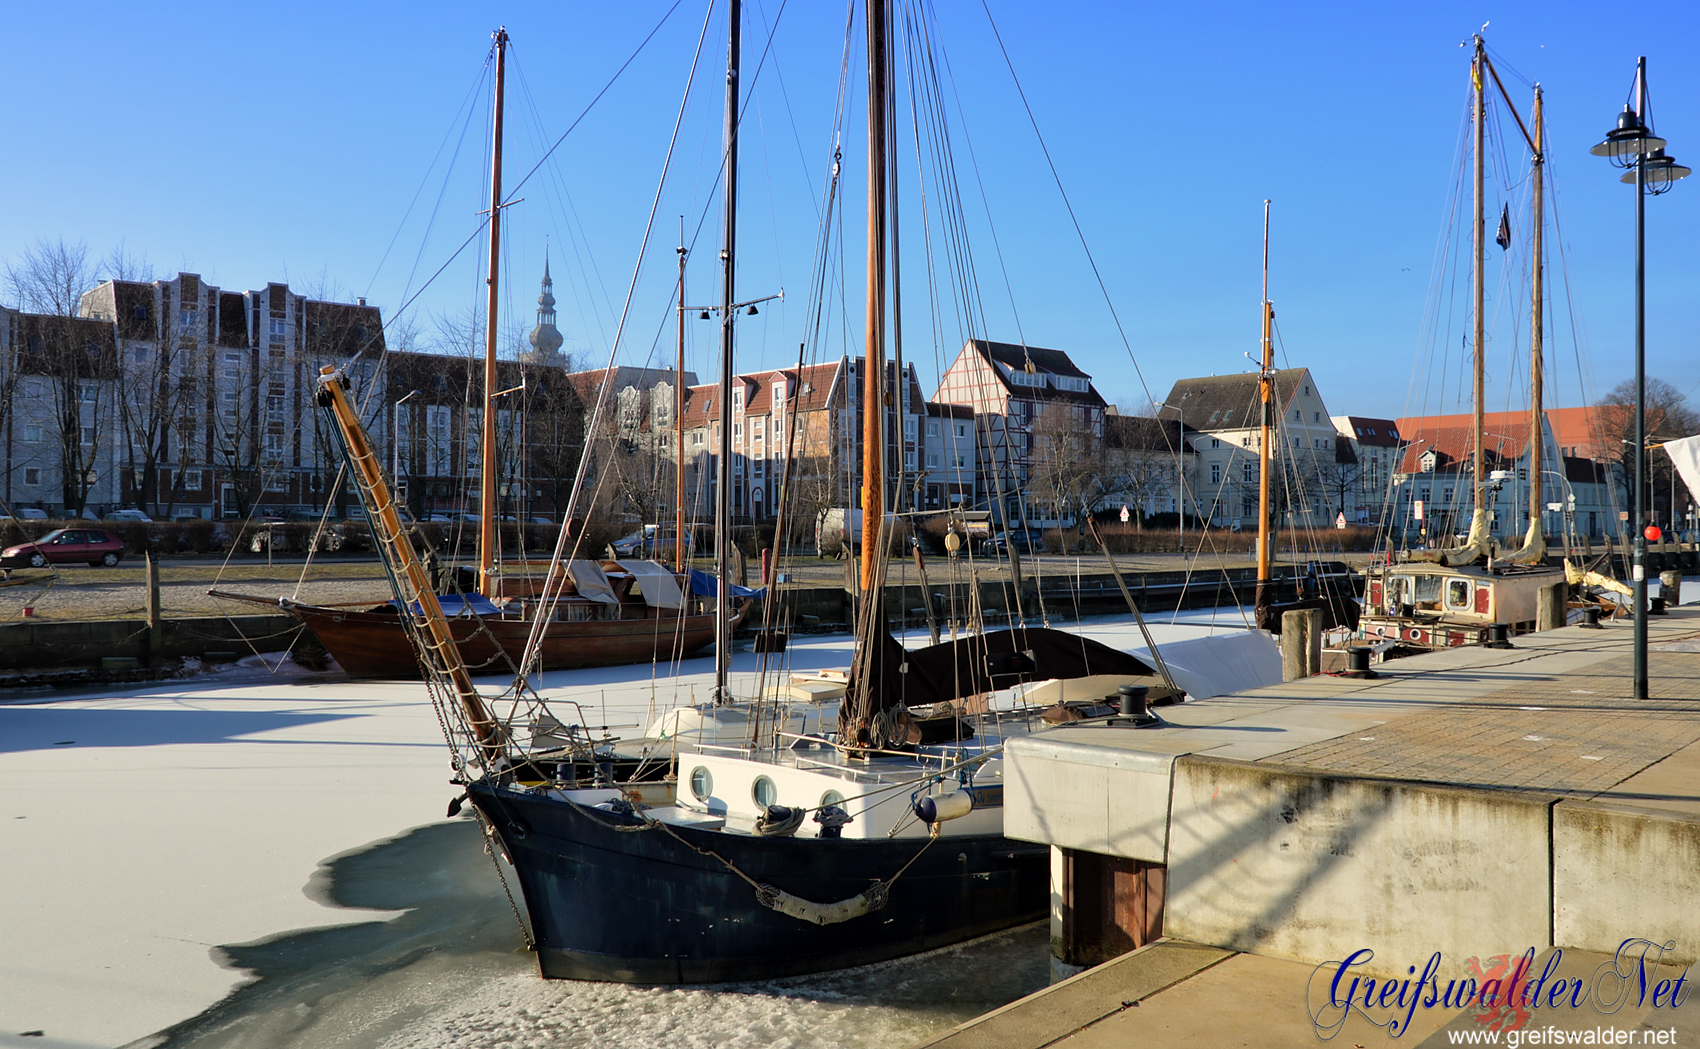 Wintertag am Museumshafen in Greifswald